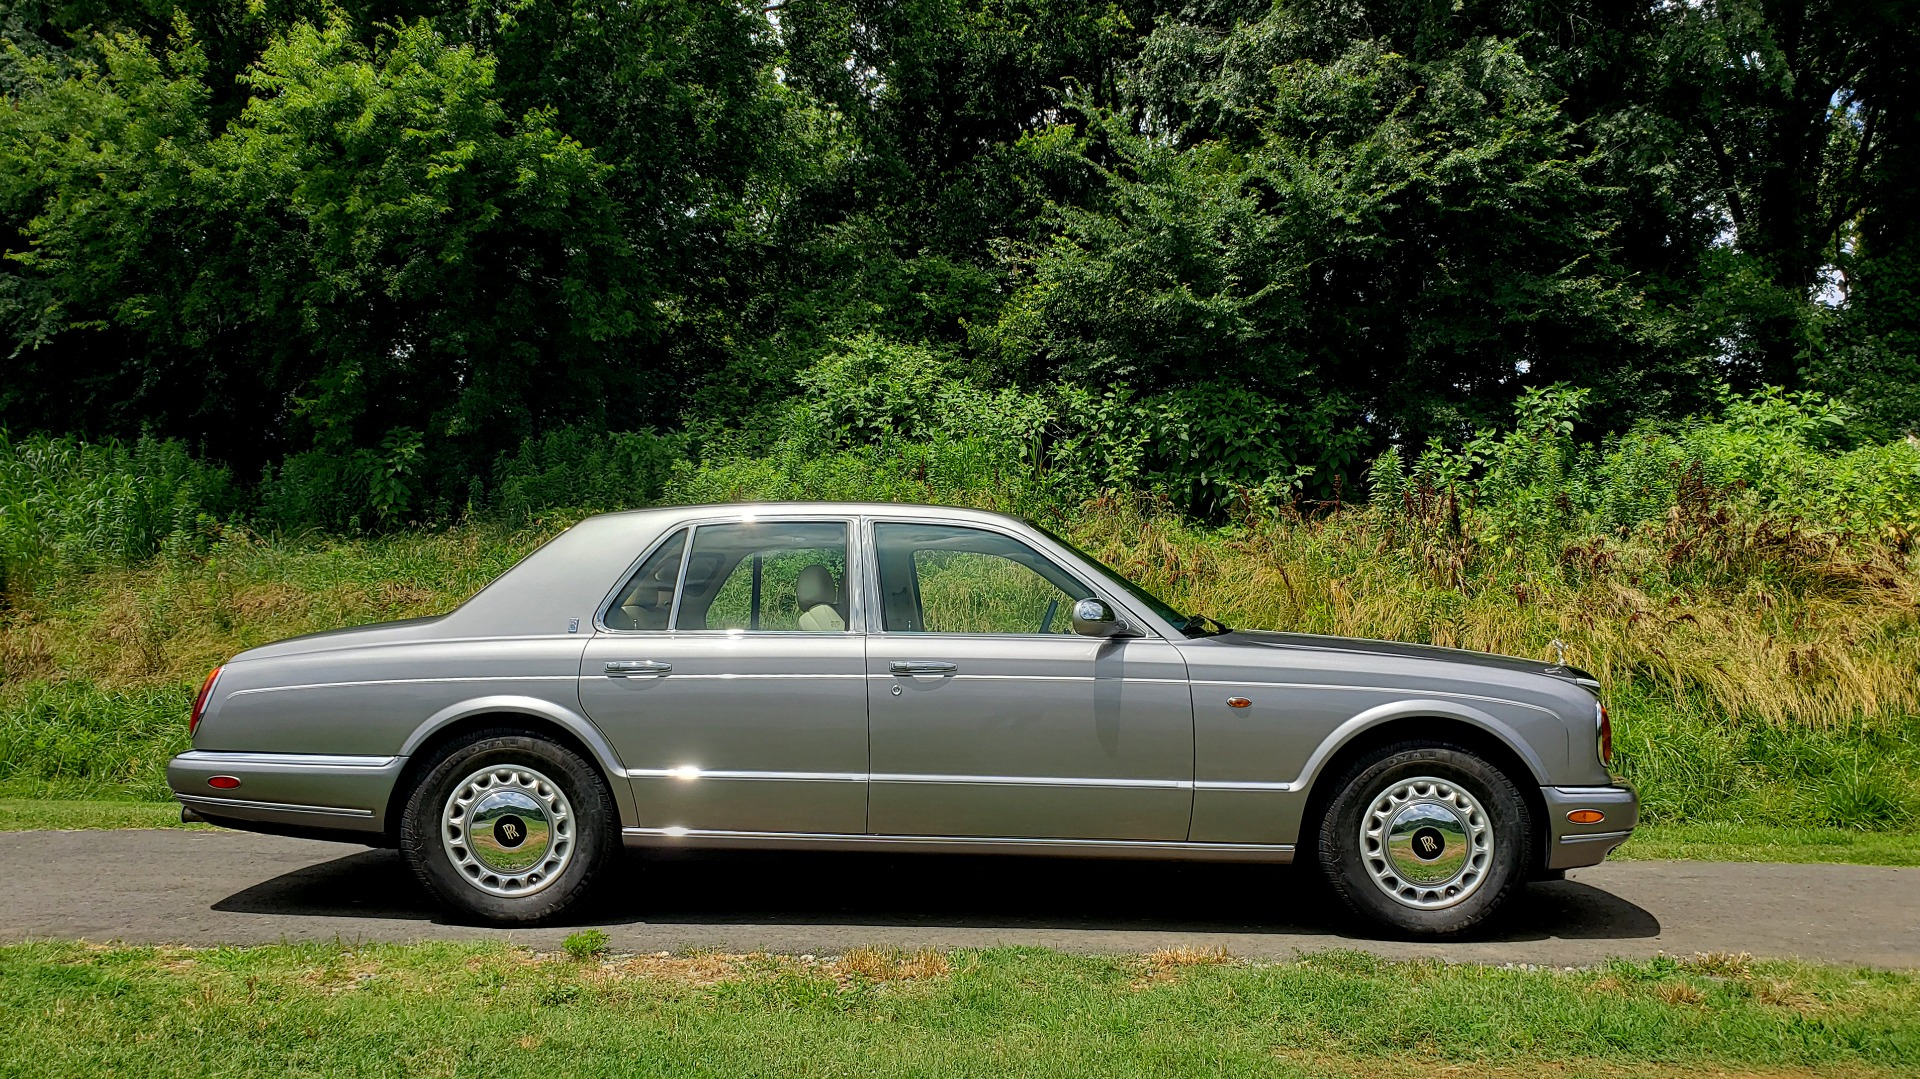 Used 1999 Rolls-Royce SILVER SERAPH 5.4L V12 / AUTO TRANS / LOW MILES / VERY CLEAN! for sale $34,999 at Formula Imports in Charlotte NC 28227 18